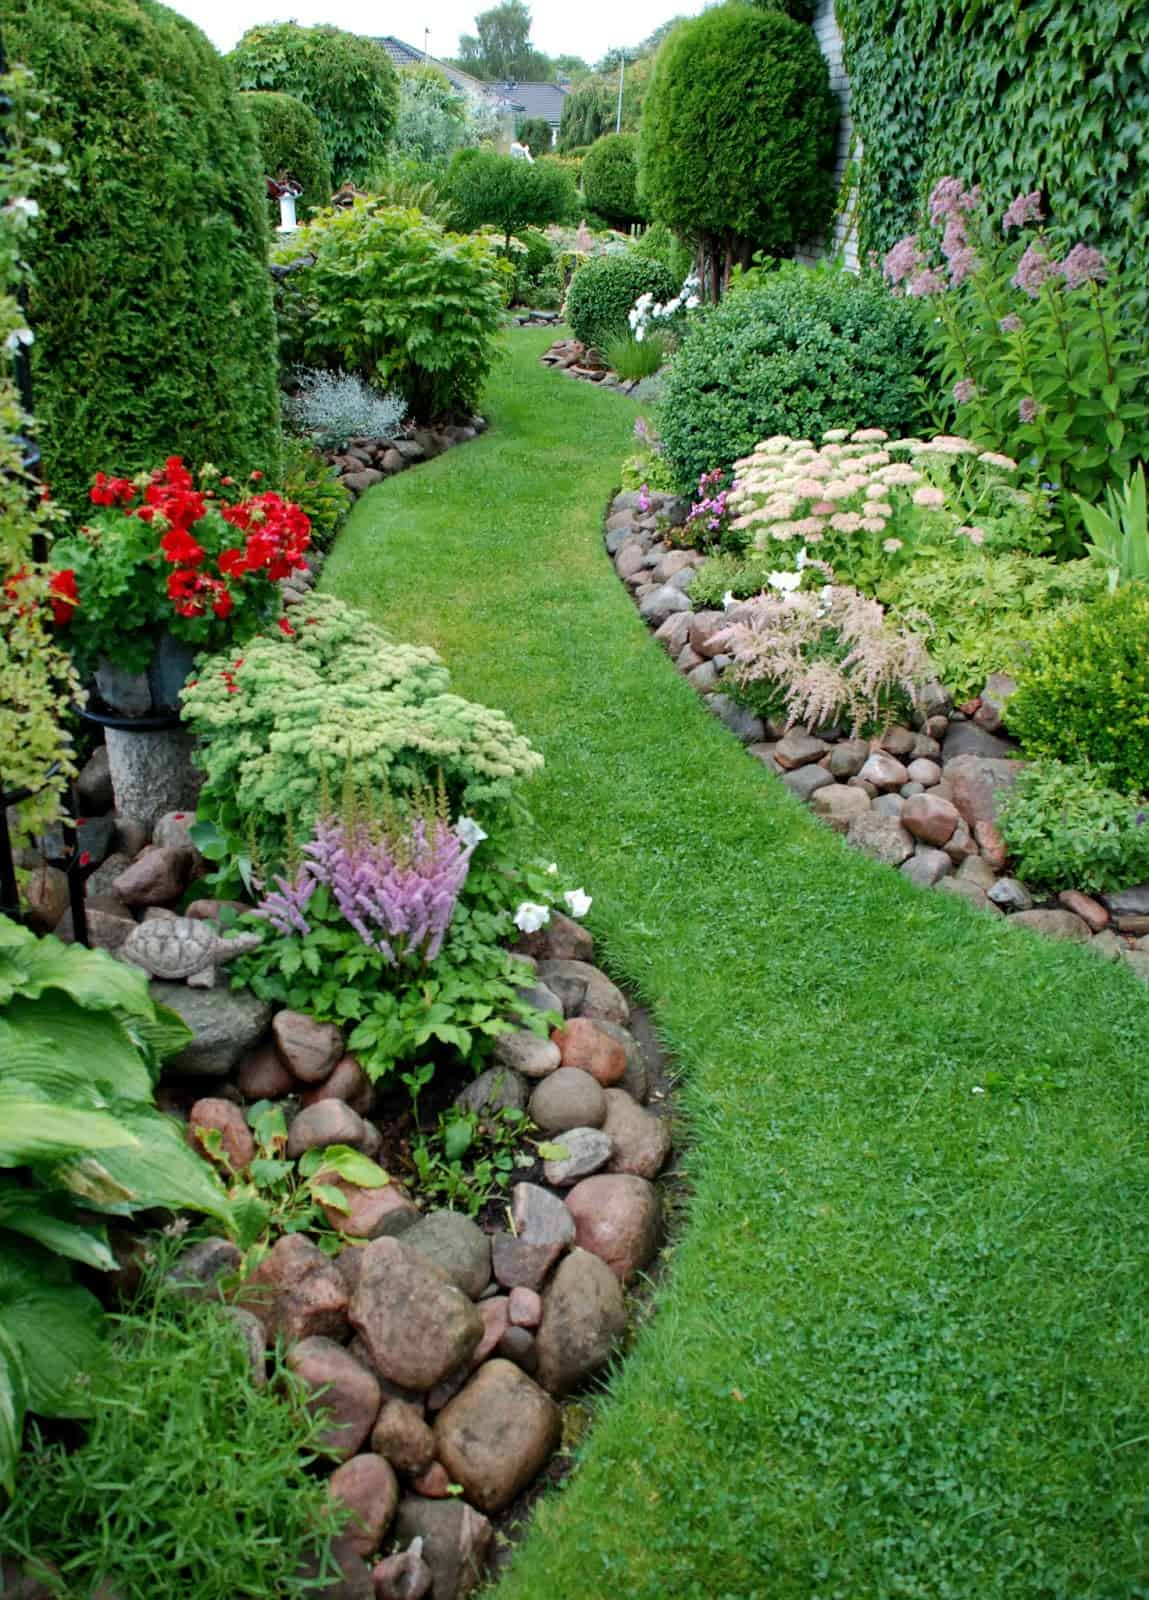 An easy curb appeal tip: Build berms #curbAppeal #landscaping #backyard #backyarddesign  #backyard #garden